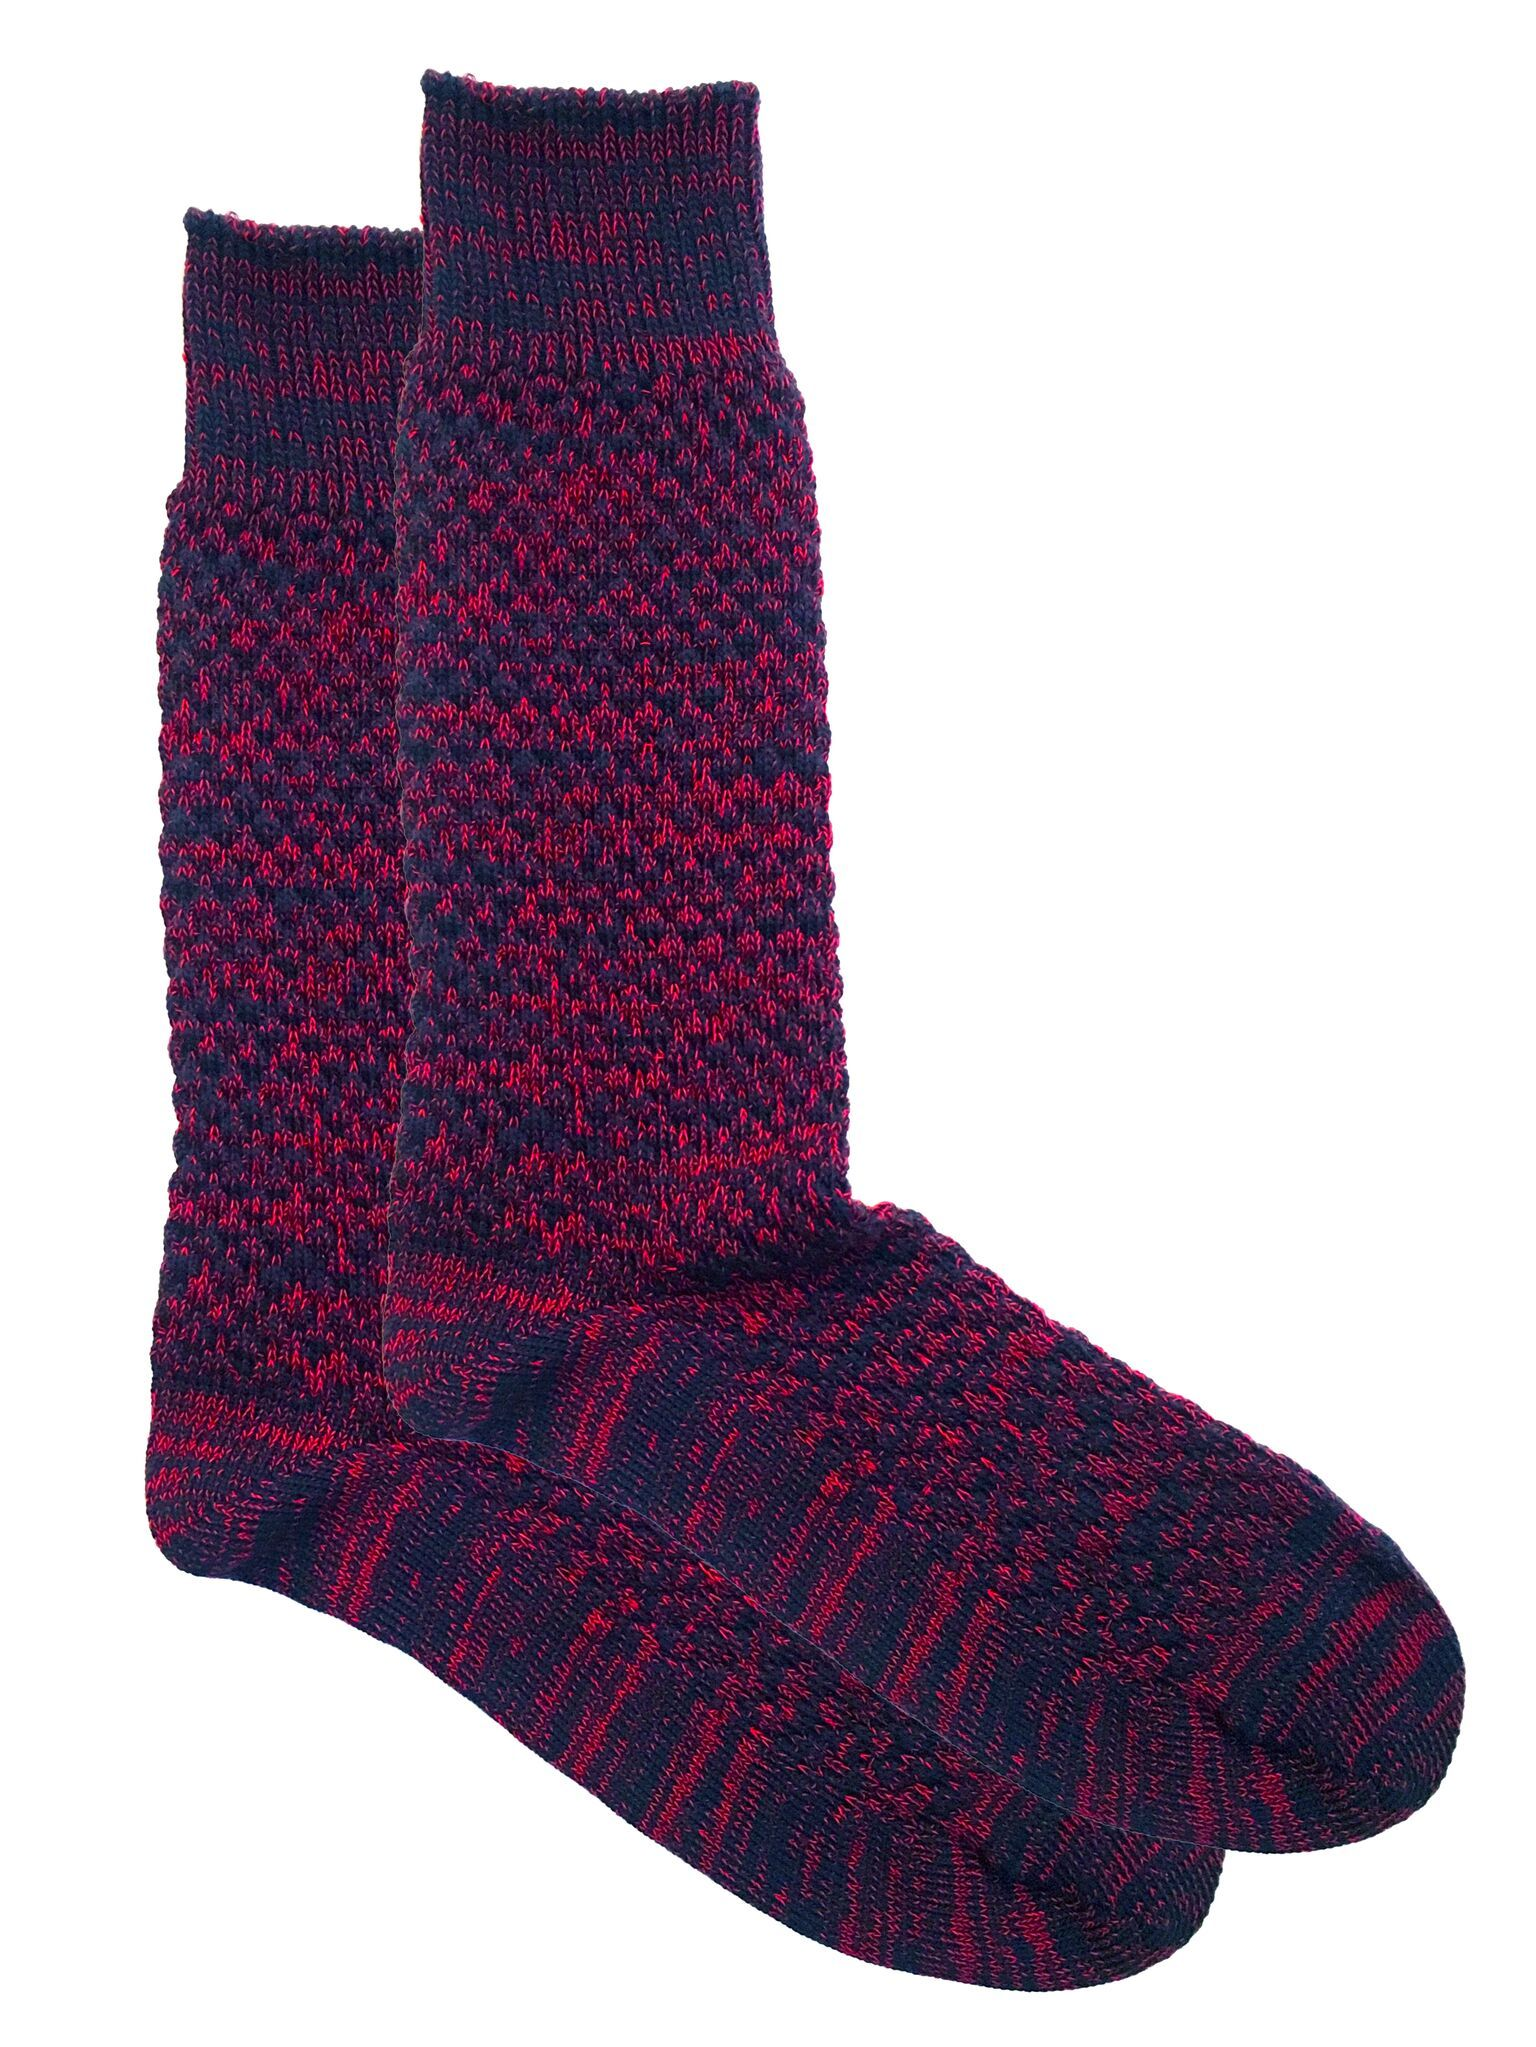 Oscar Sock Navy/Red Sock MP Crafted Garments - der ZEITGEIST